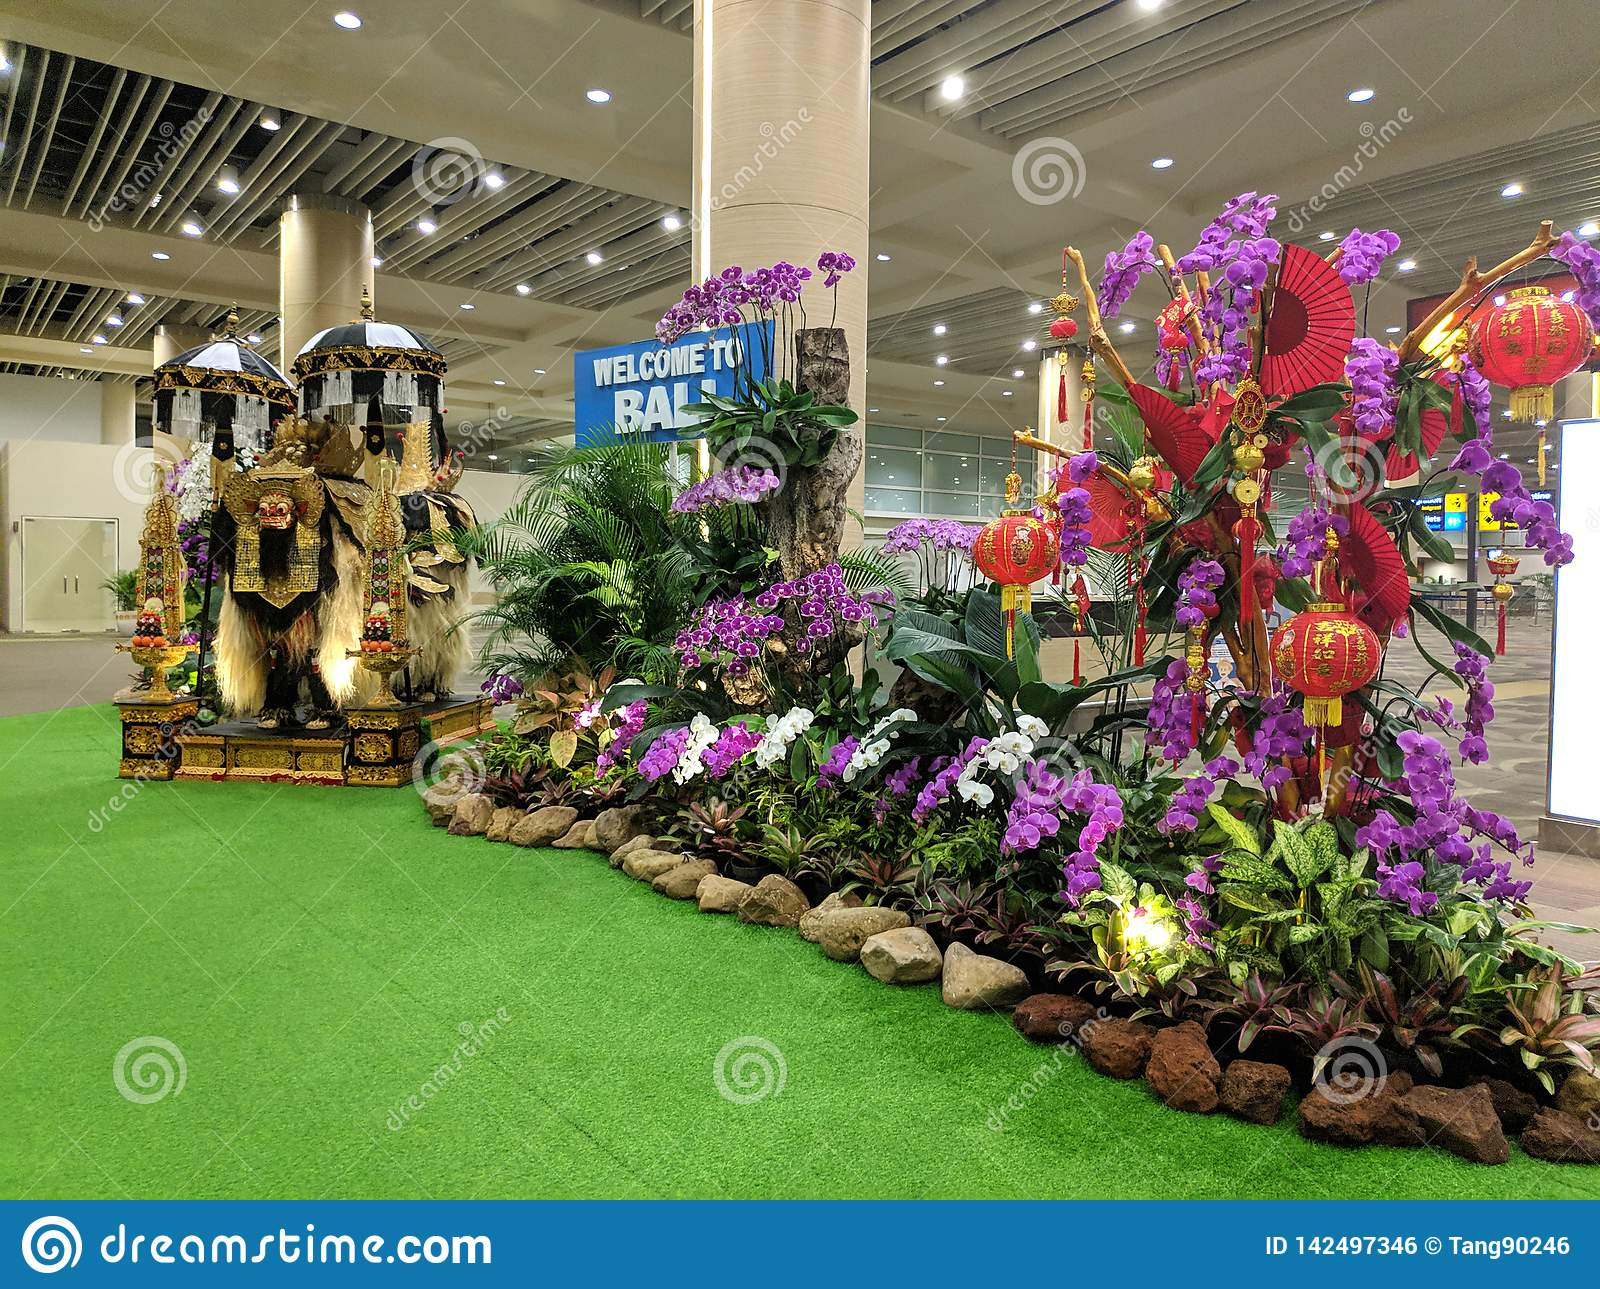 Welcome Sign To Bali In Ngurah Rai International Airport Editorial Photo -  Image of airways, sign: 142497346